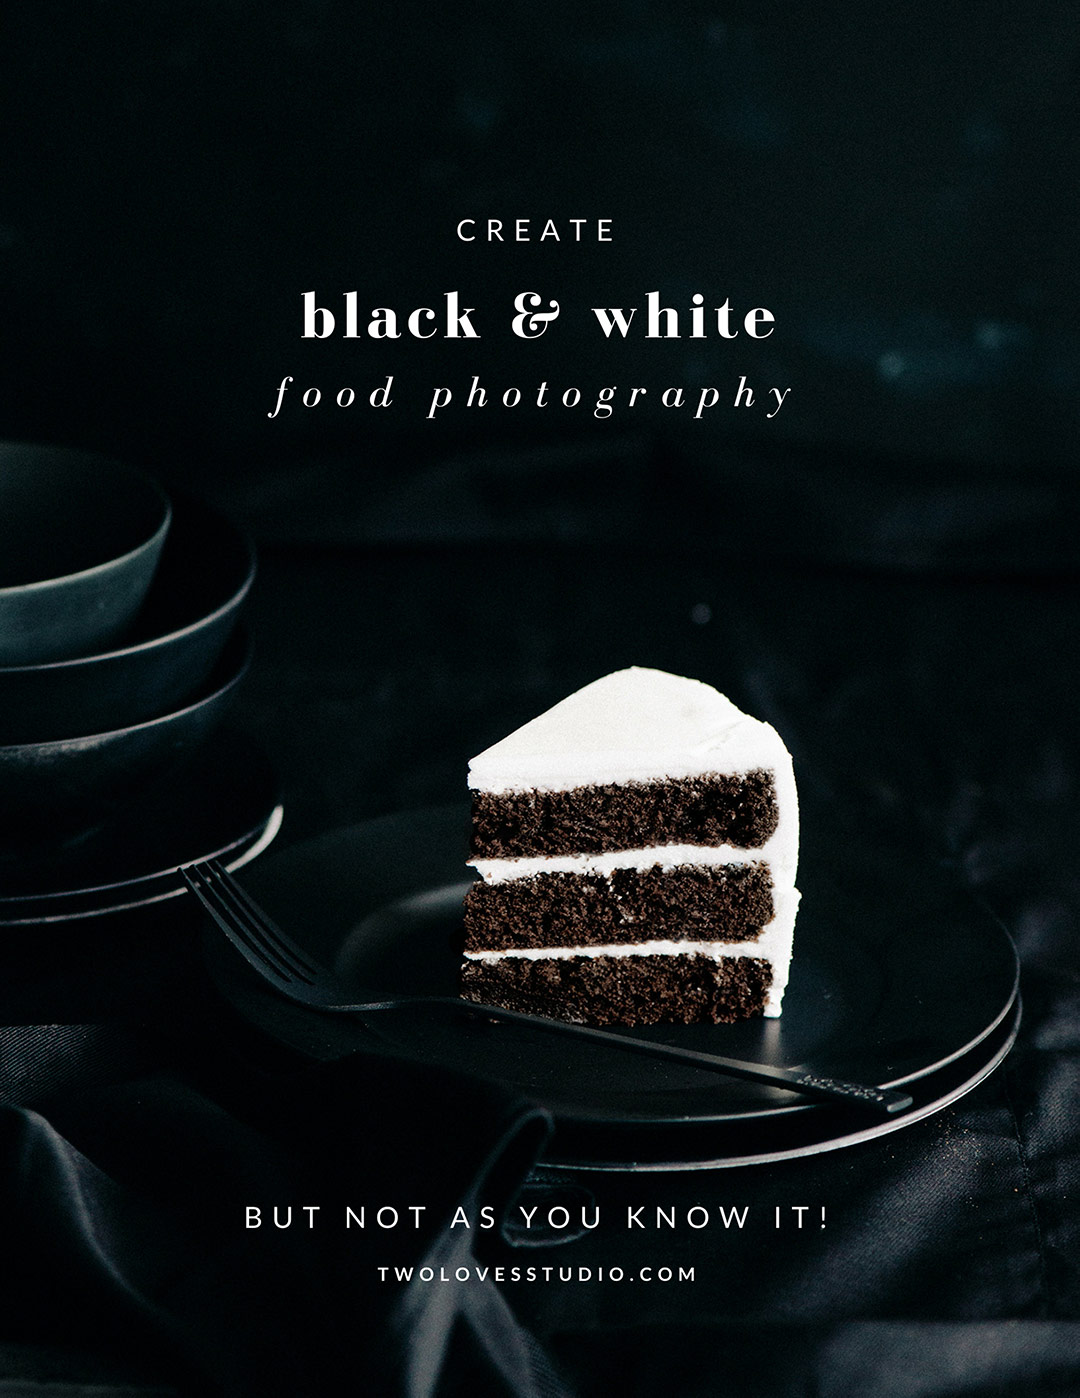 How to create black and white food photography